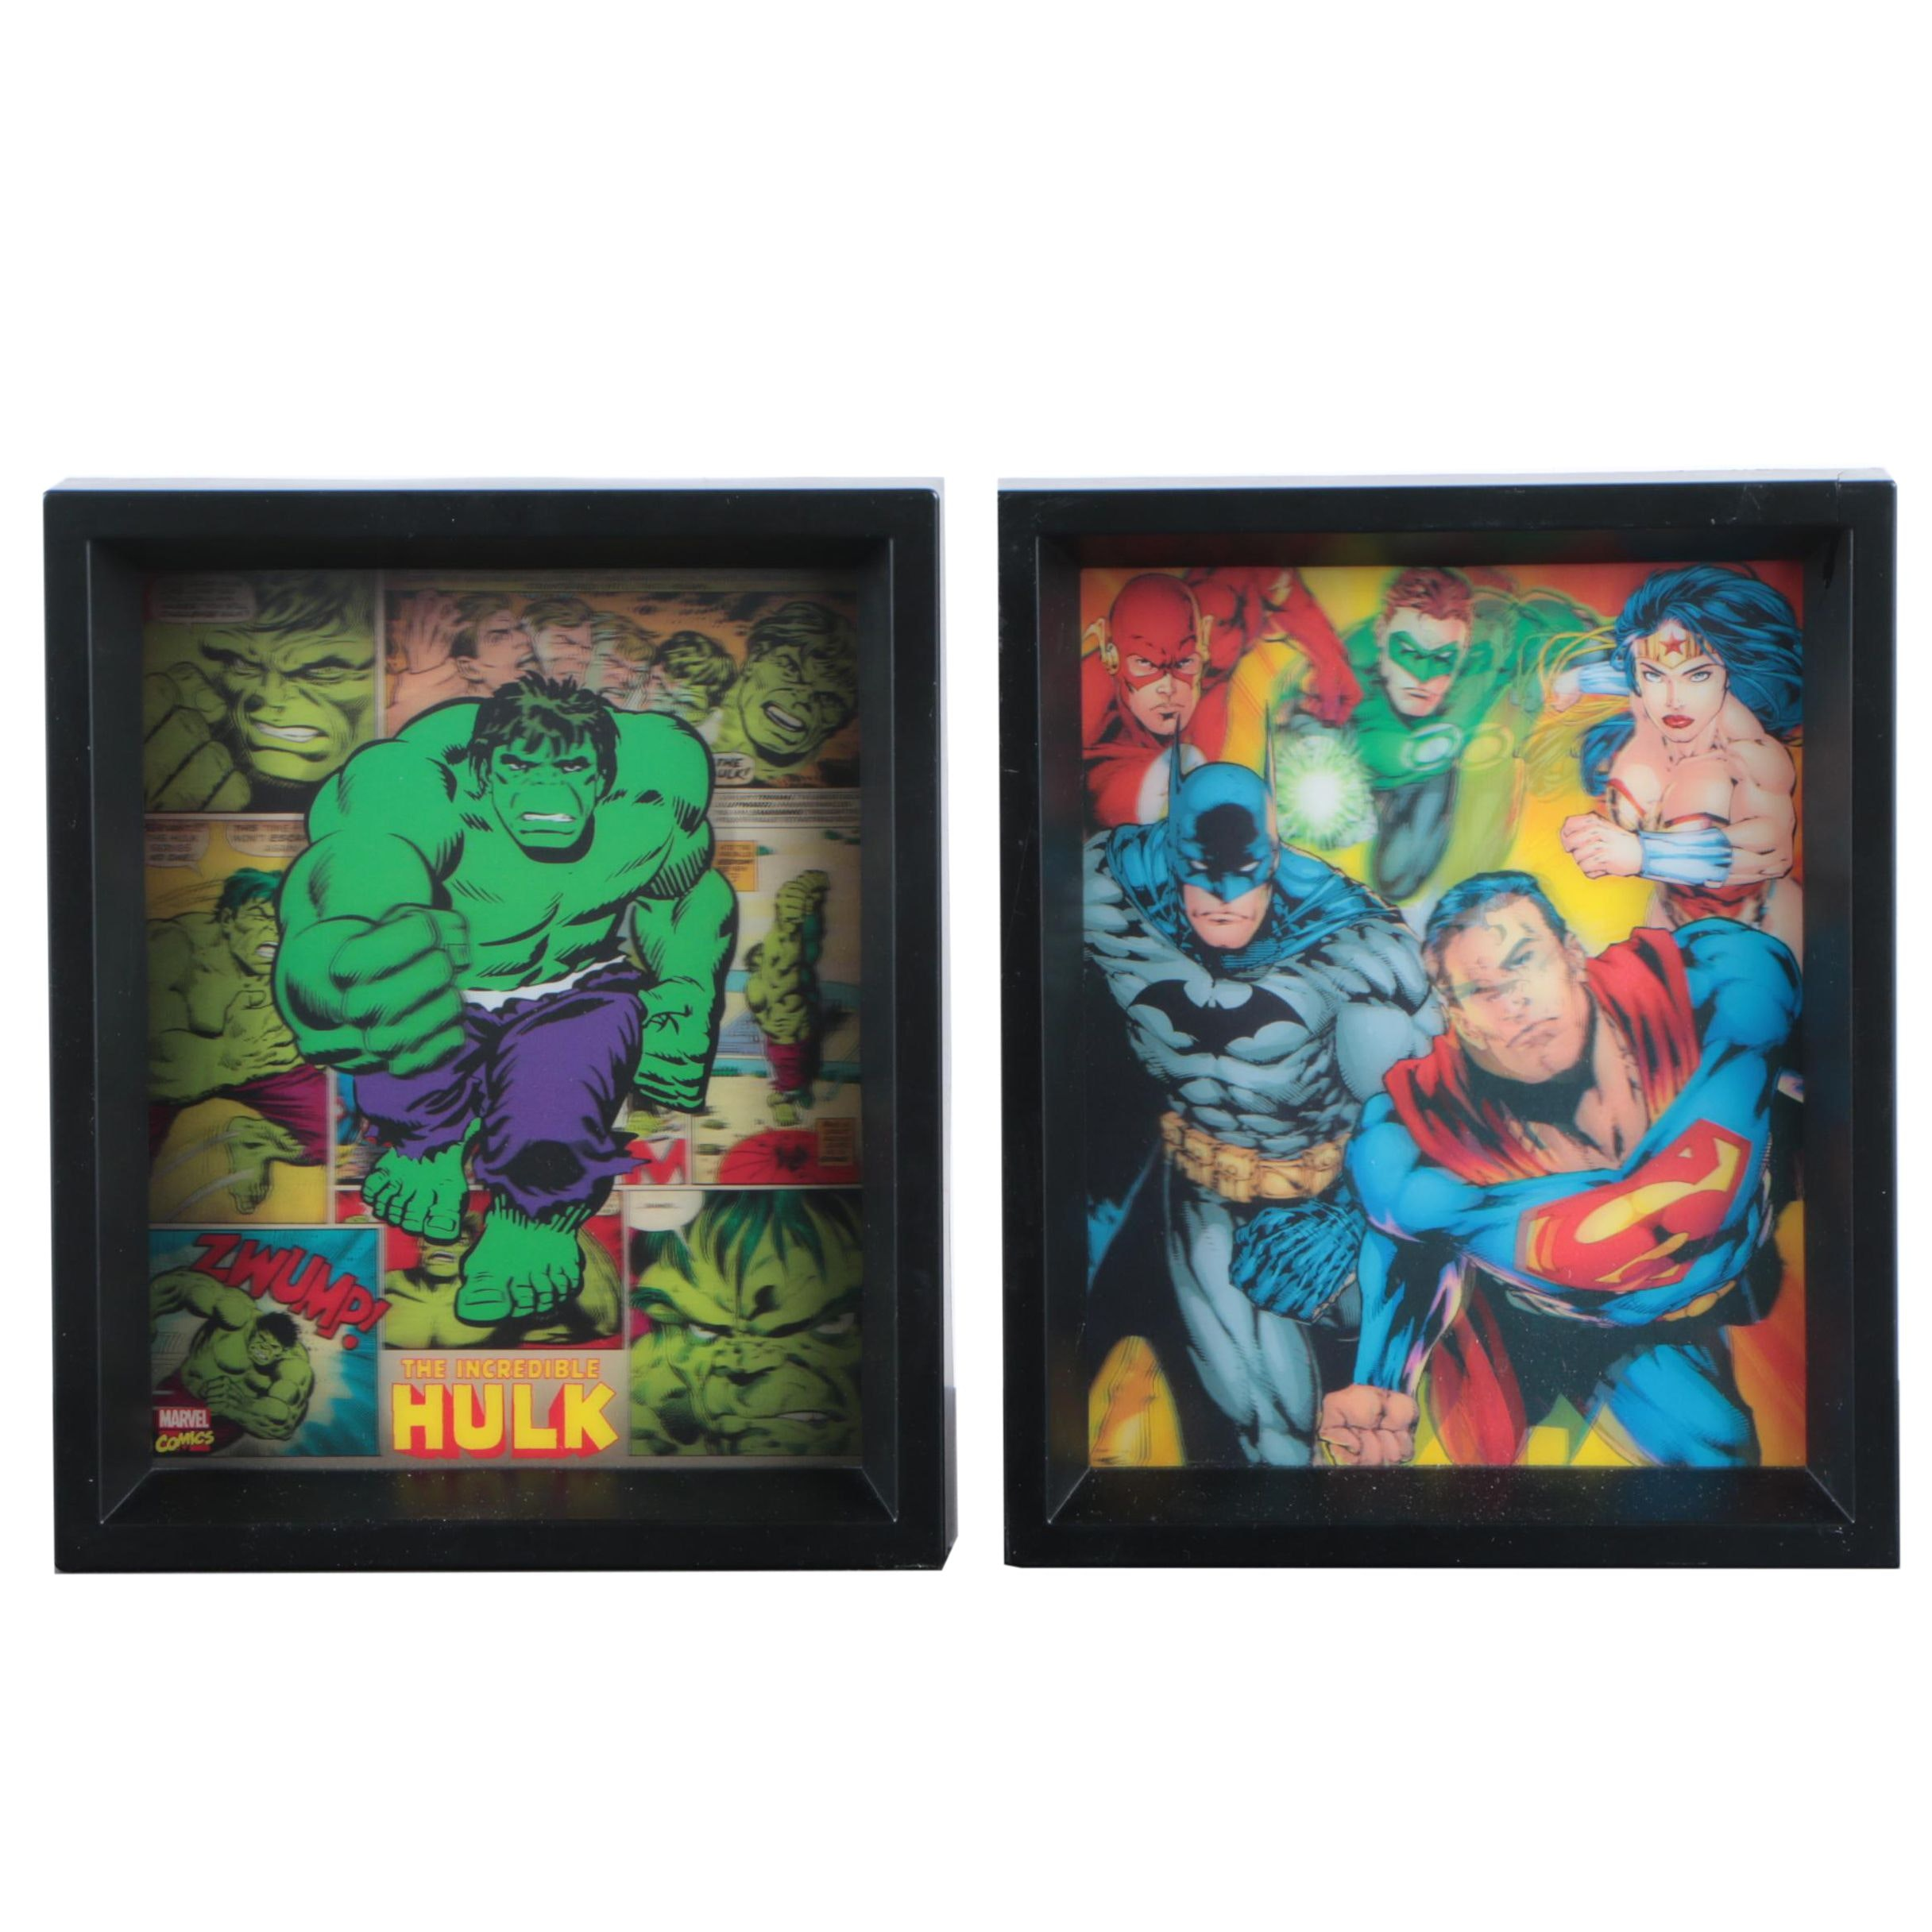 Pyramid America Lenticular Wall Art of the Justice League and the Hulk